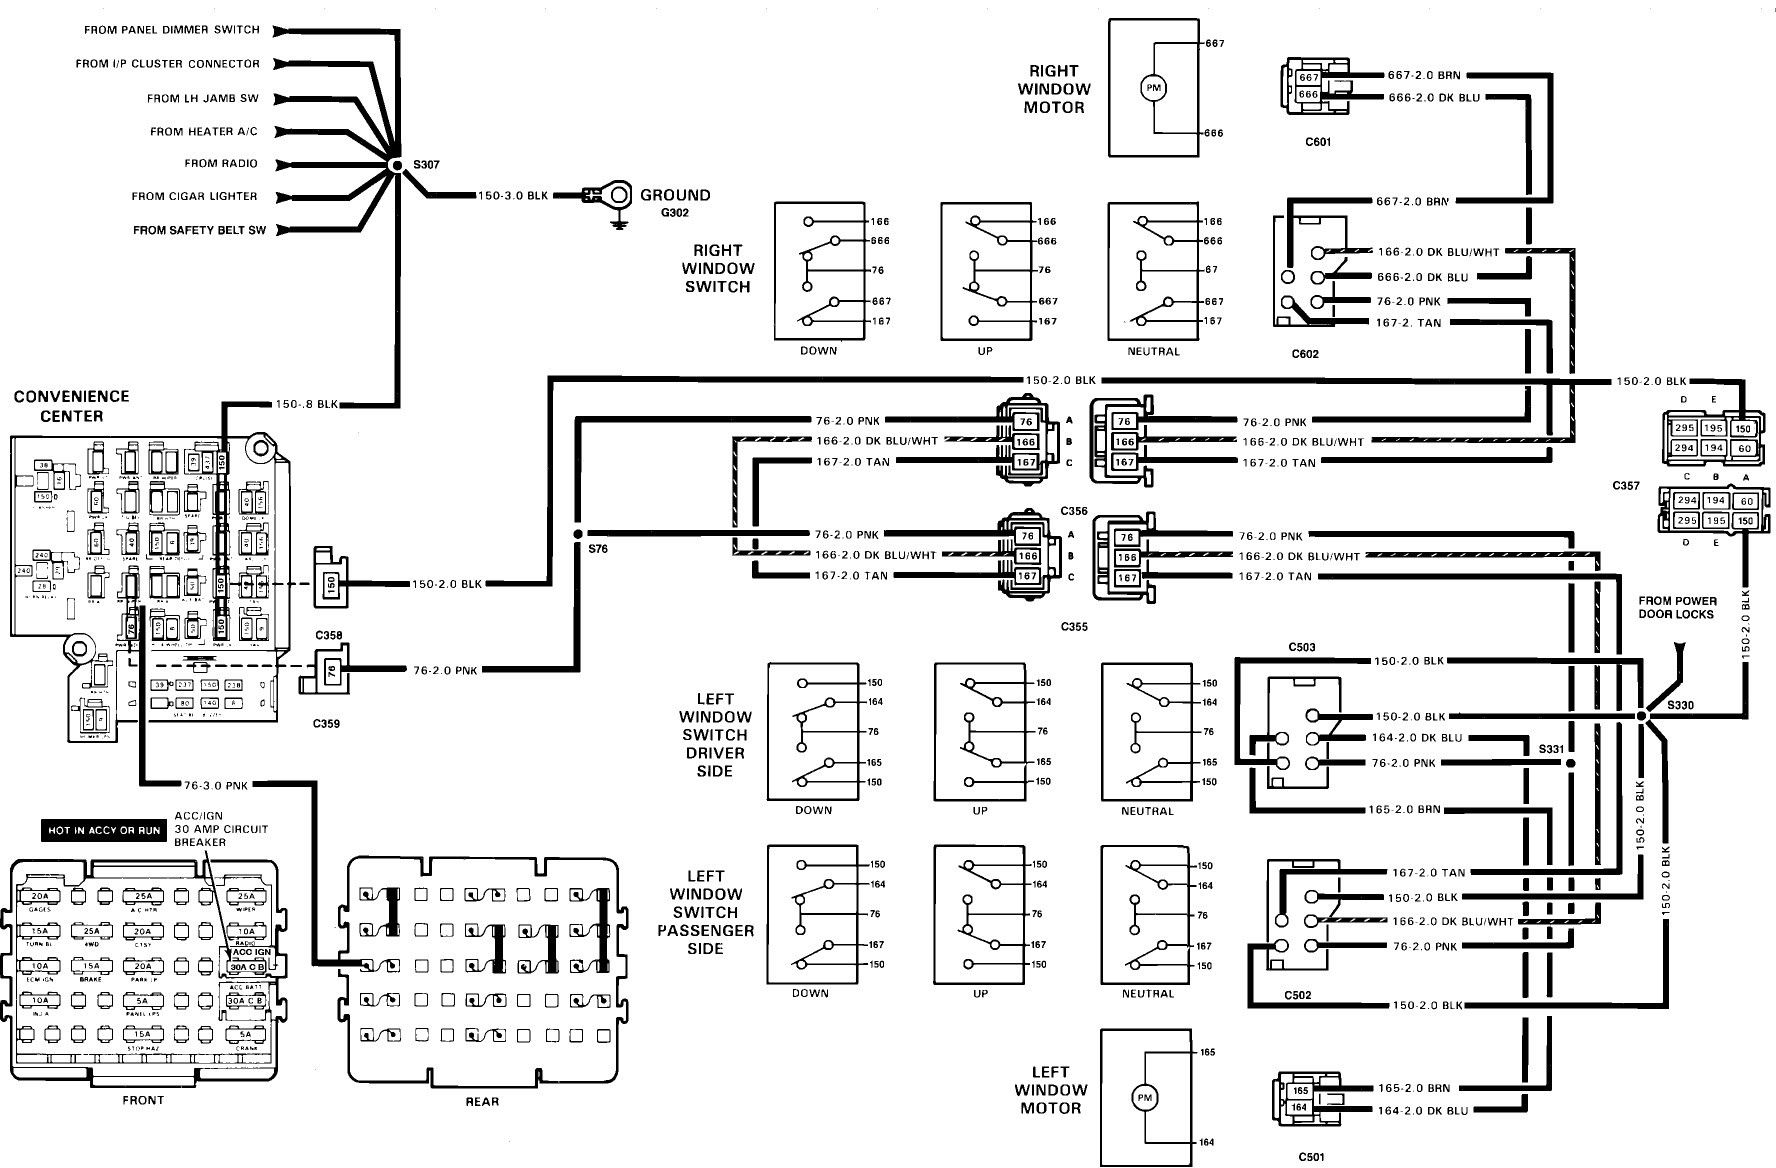 Chevy Ecm Wiring Diagram Together With 1227747 Ecm For Gm Tbi Wiring